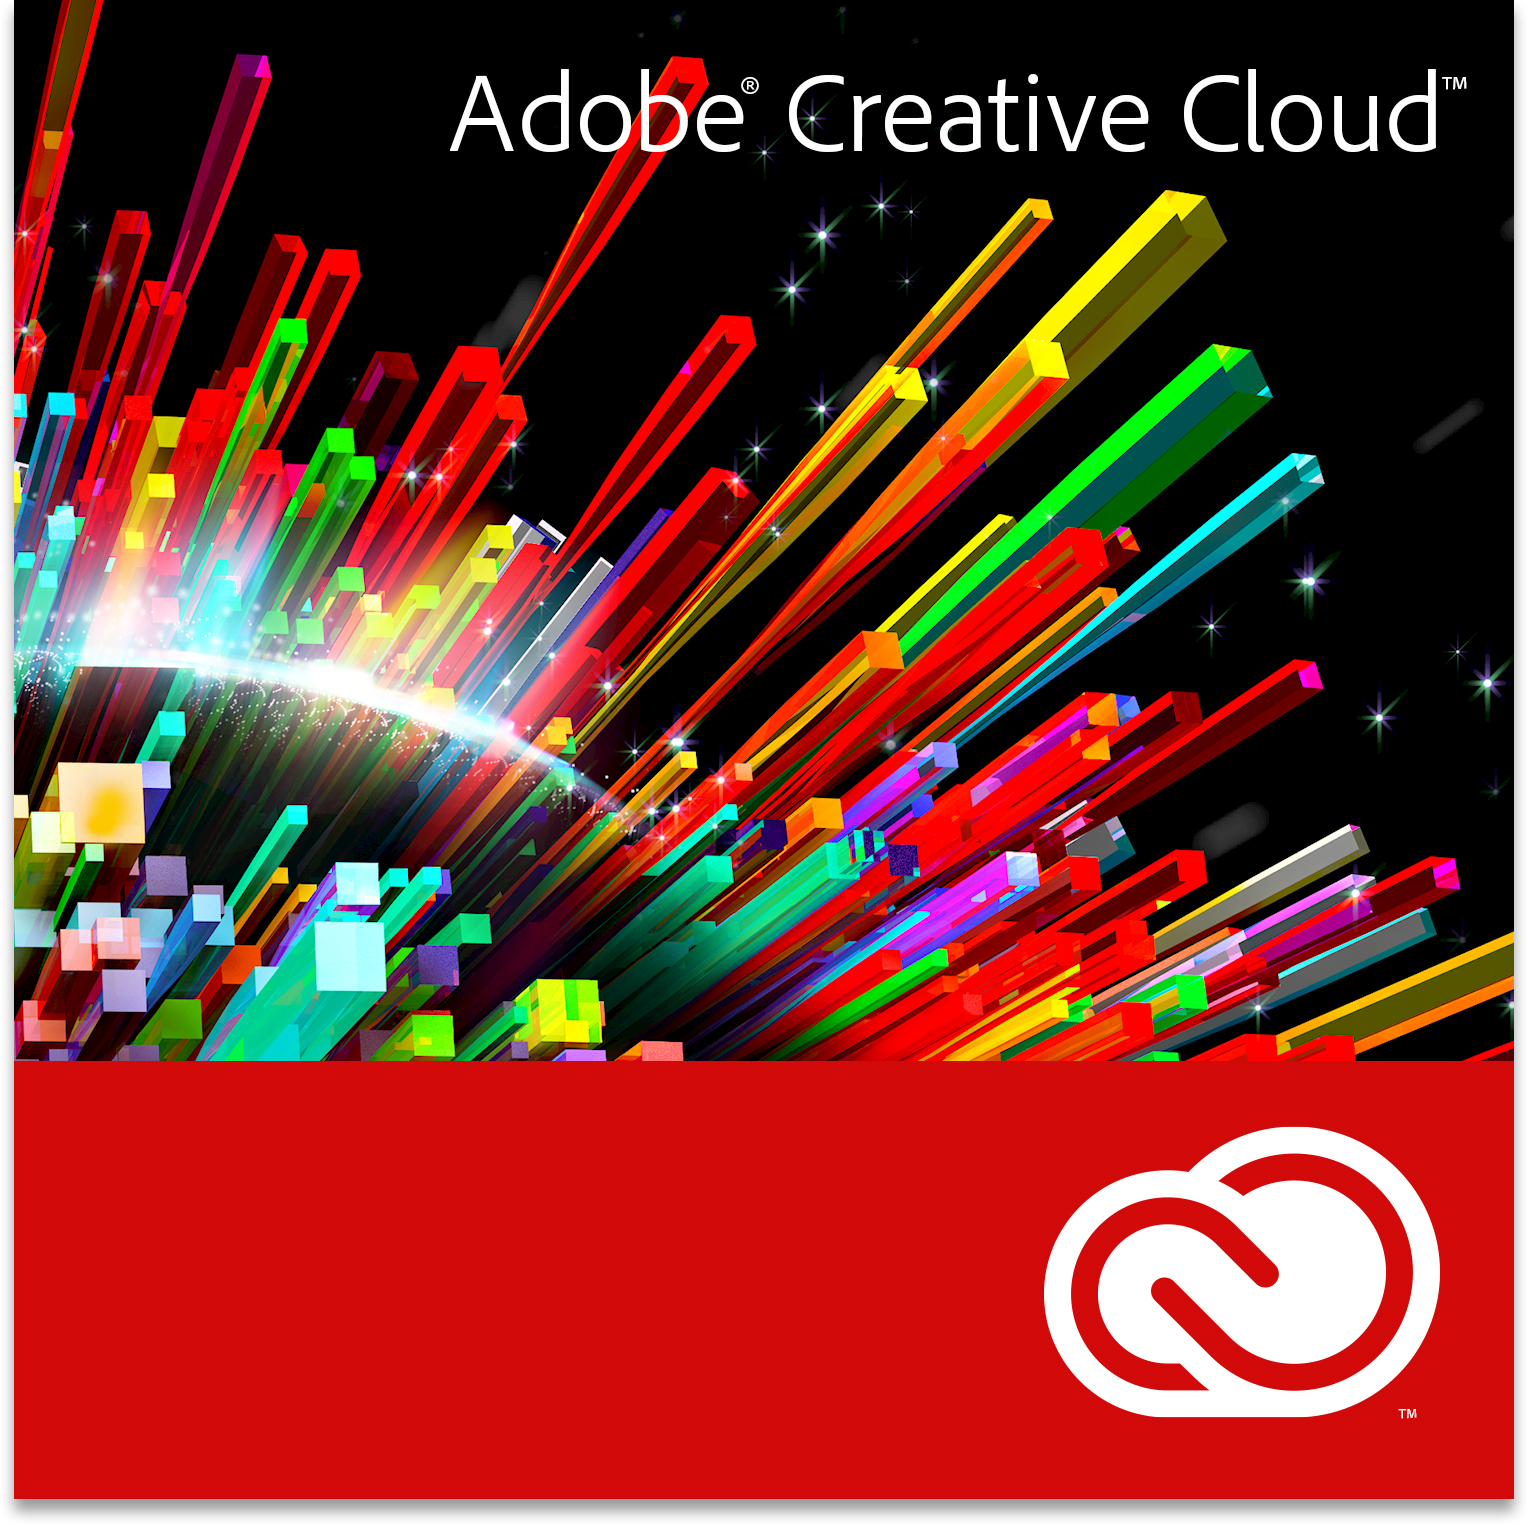 one outstanding creative will receive a 12 month free access to Adobe creative cloud.